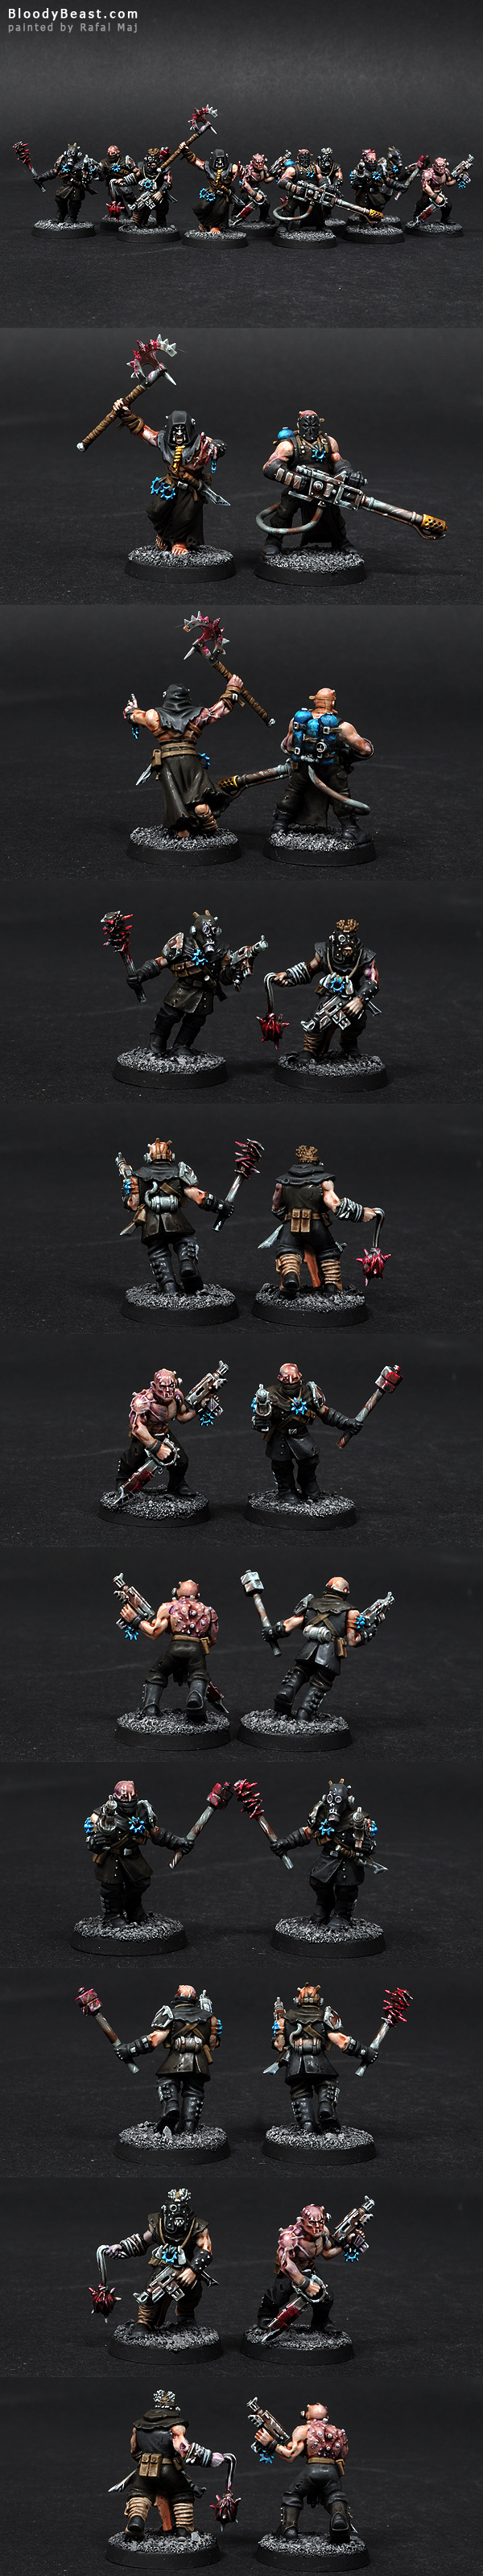 Chaos Space Marines Chaos Cultists with Autopistols painted by Rafal Maj (BloodyBeast.com)